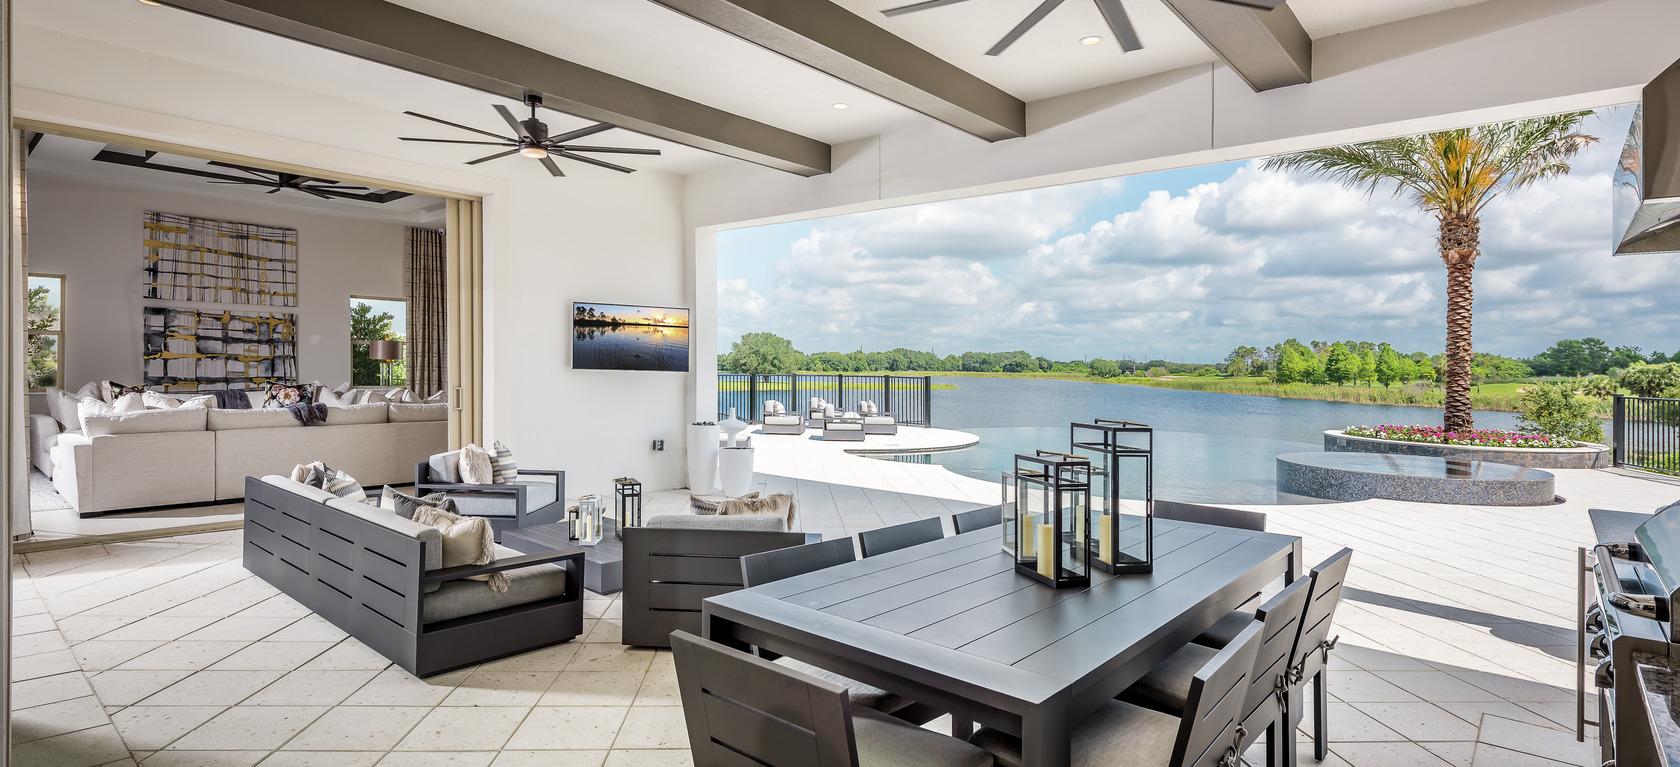 Indoor Outdoor Living Space Ideas to Inspire Your Home Design on Enclosed Outdoor Living Spaces id=15095